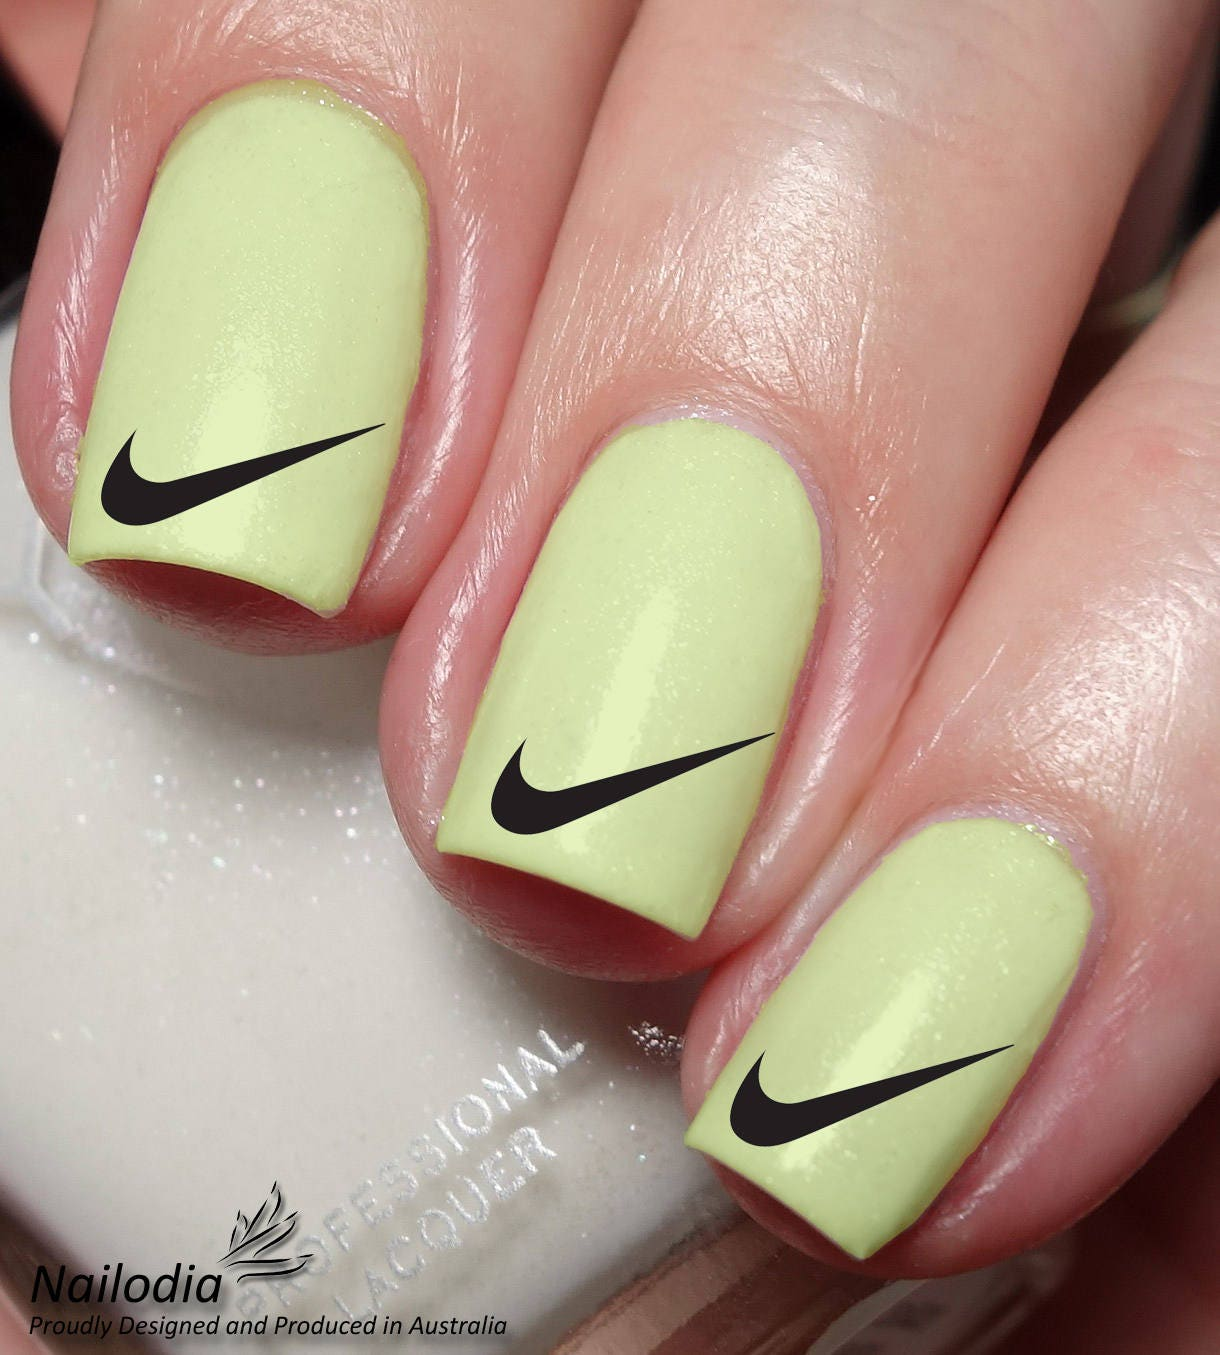 Nike Nail Art Sticker Water Transfer Decal wrap 142 from Nailodia on ...